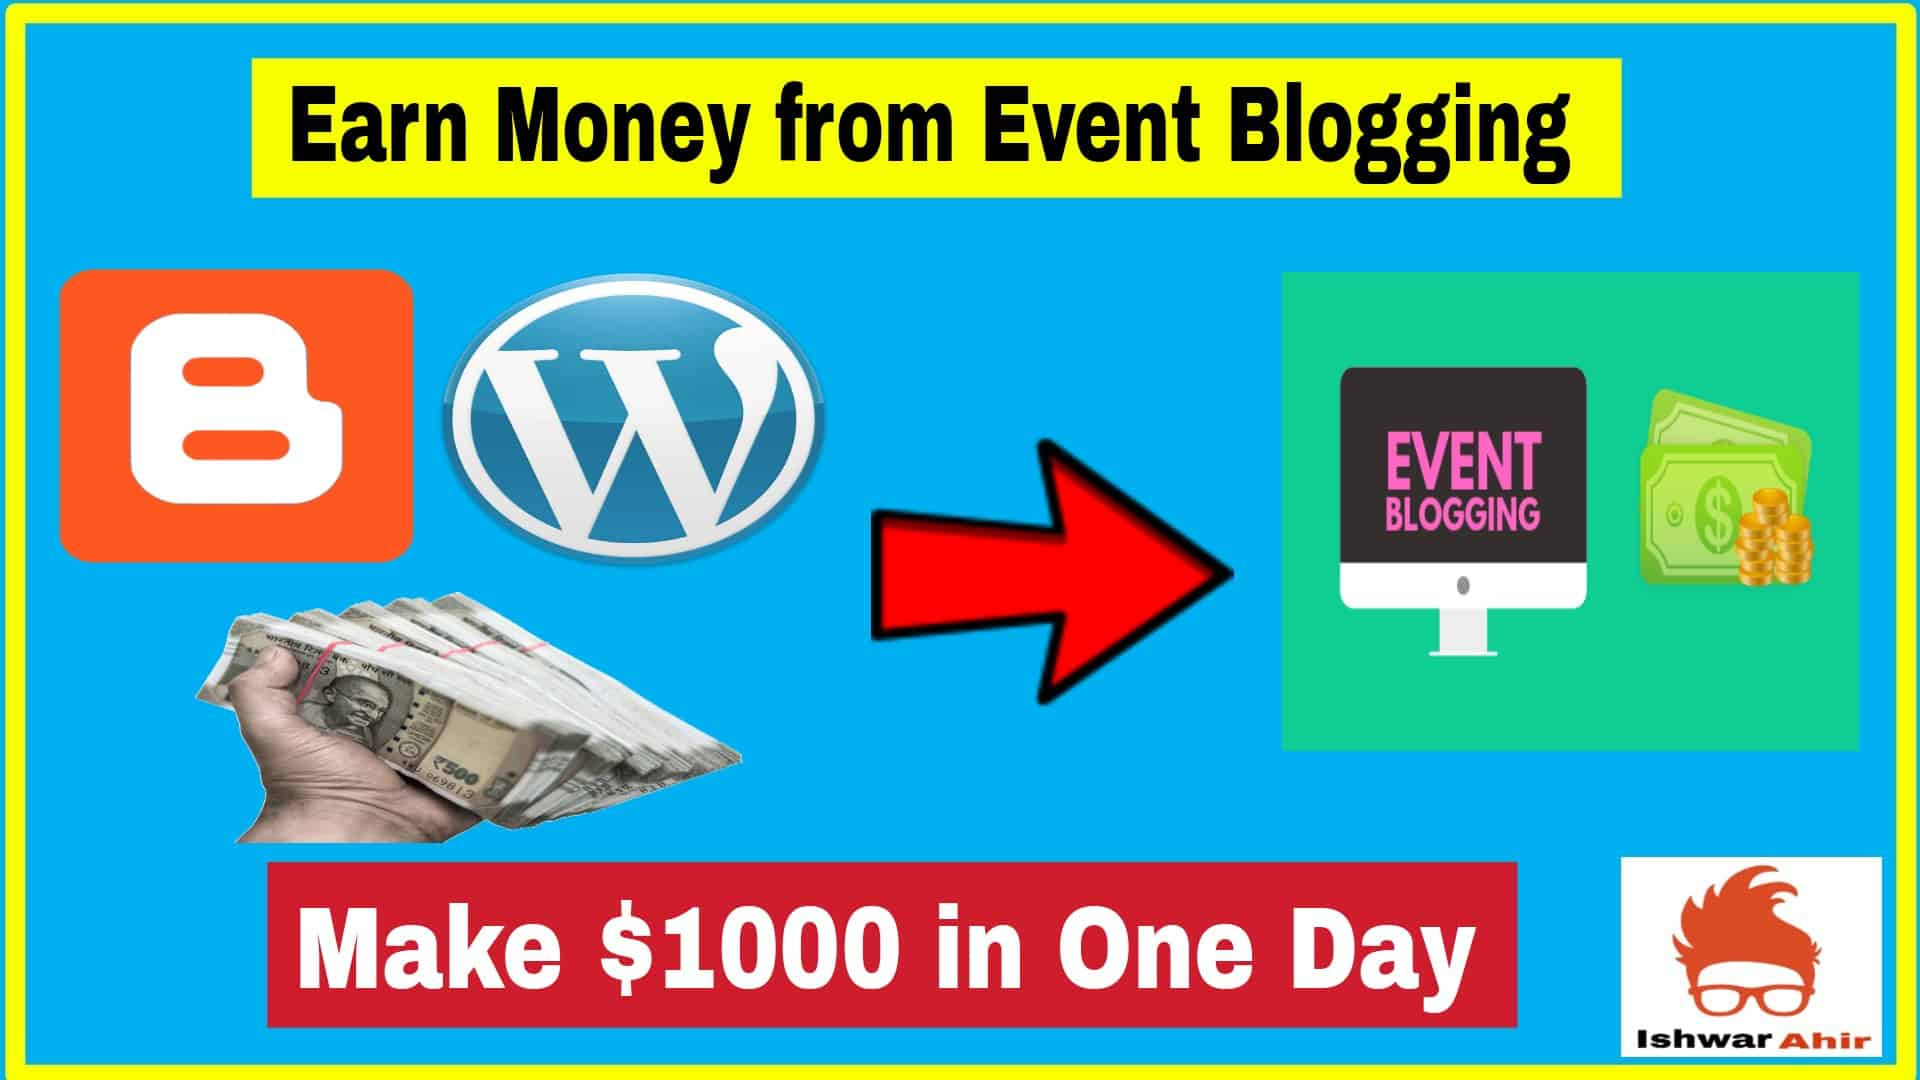 Earn Money from Event Blogging